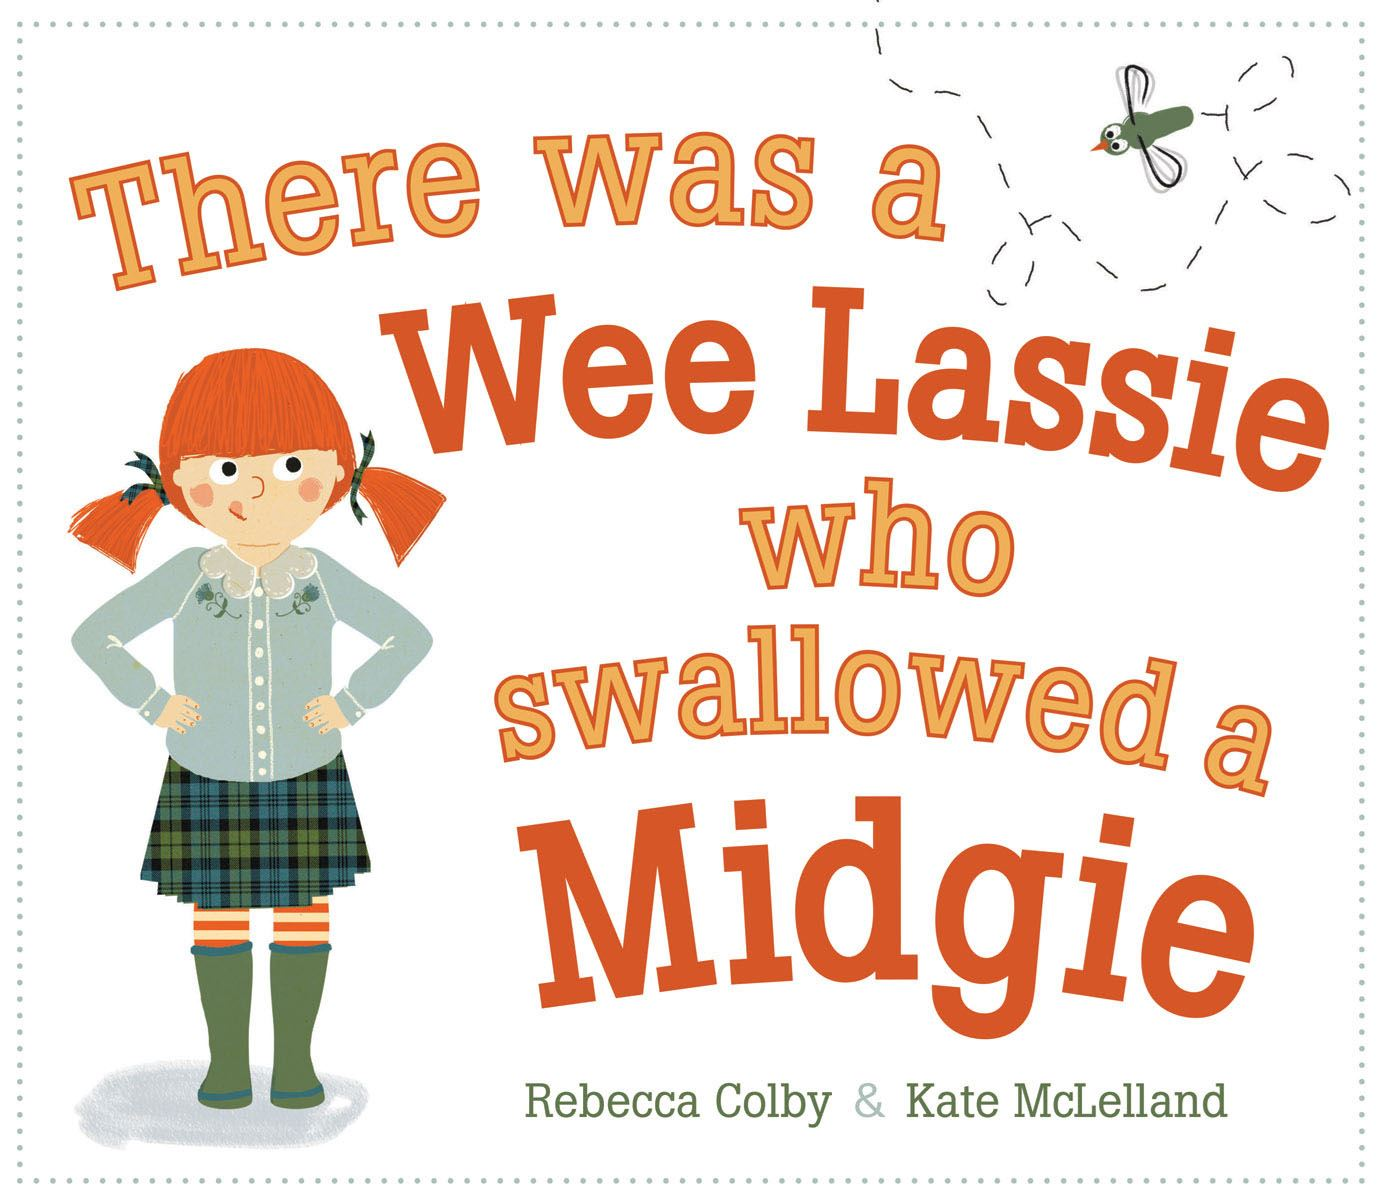 There Was A Wee Lassie Who Swallowed A Midgie (Children's Book)